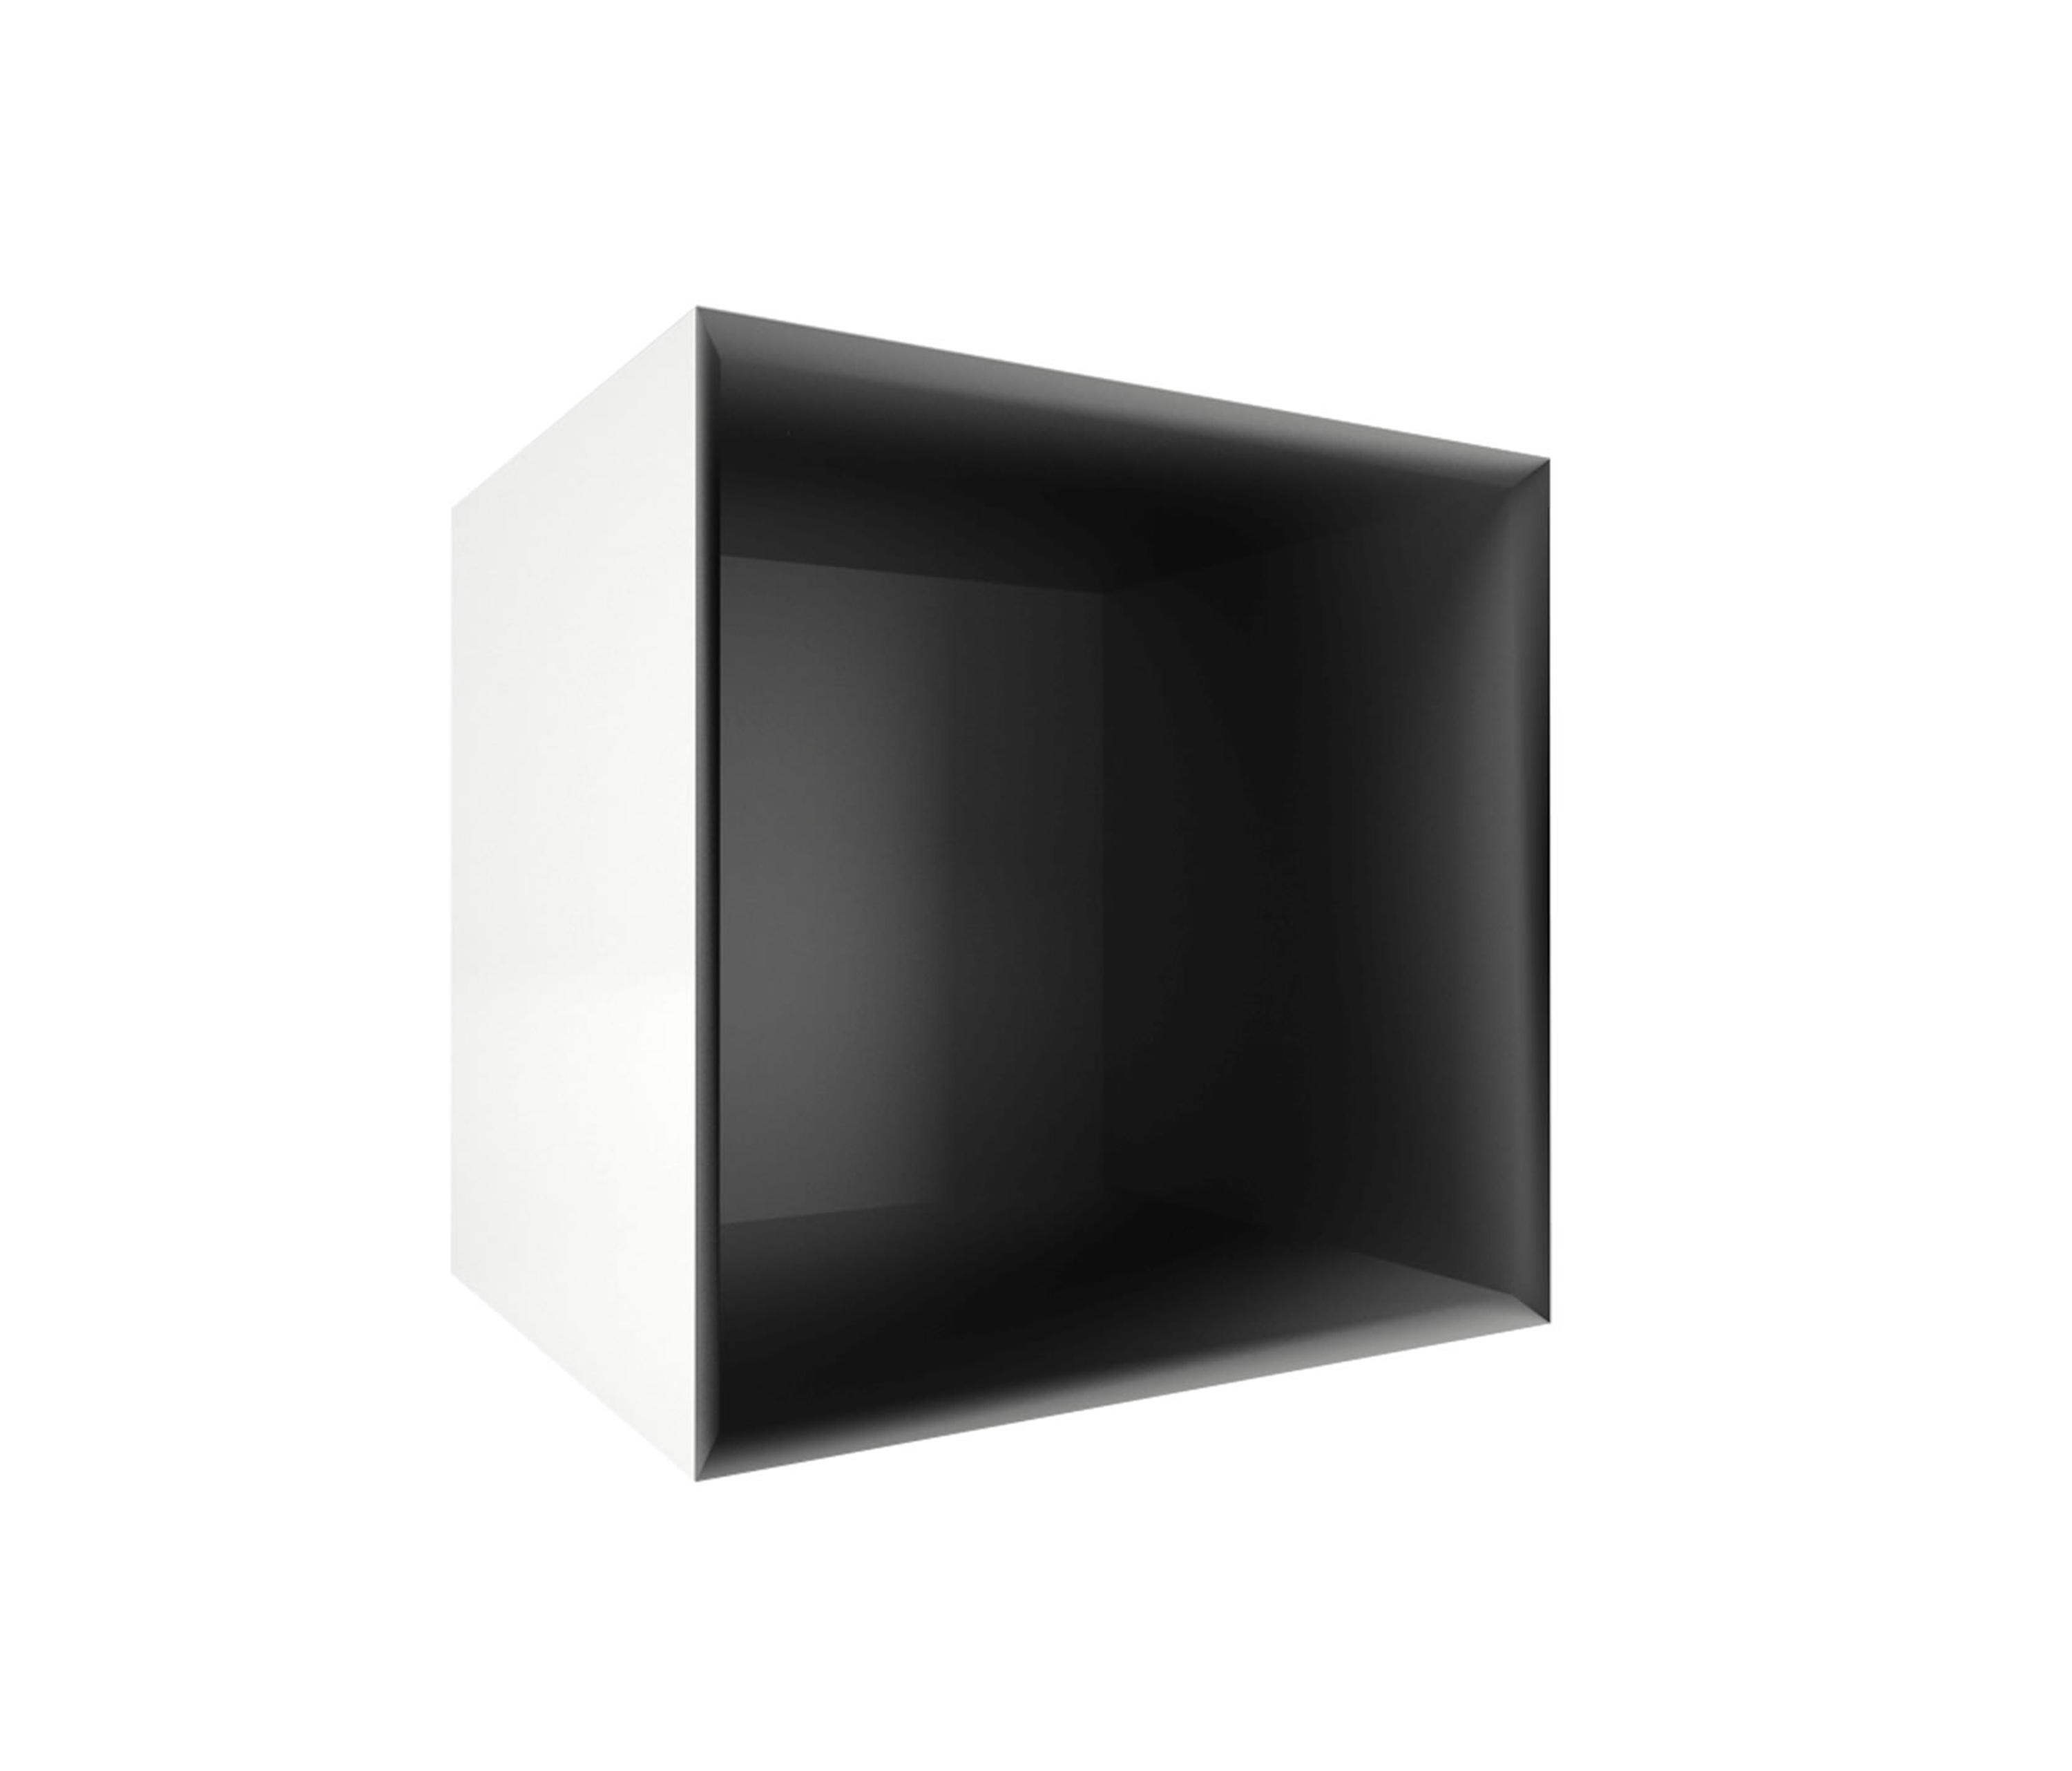 LECTULUS SHELF CUBE - Shelving from Rechteck | Architonic